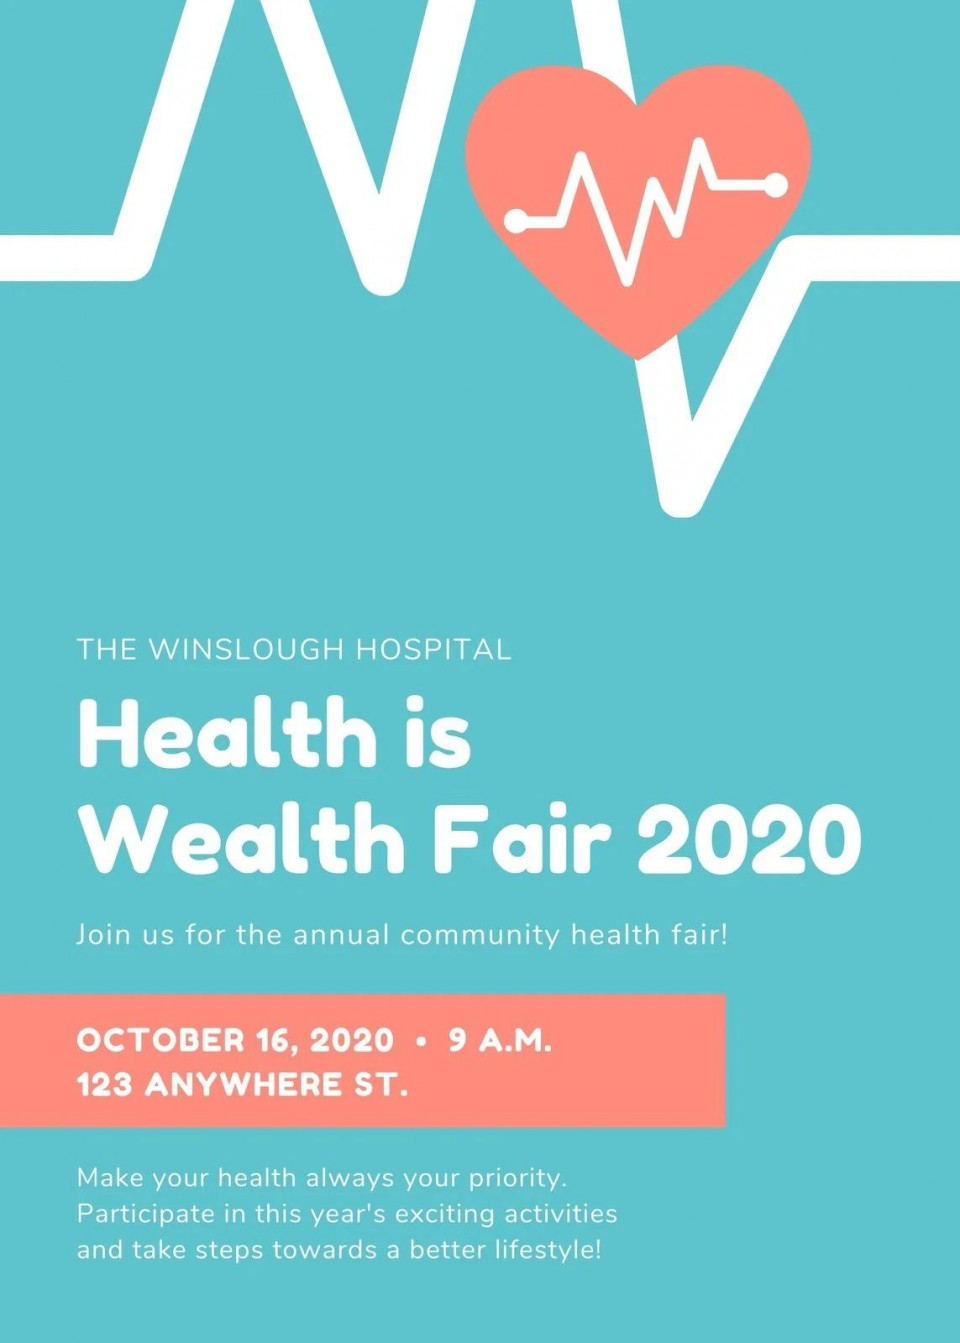 005 Fearsome Health Fair Flyer Template Picture  And Wellnes Word960